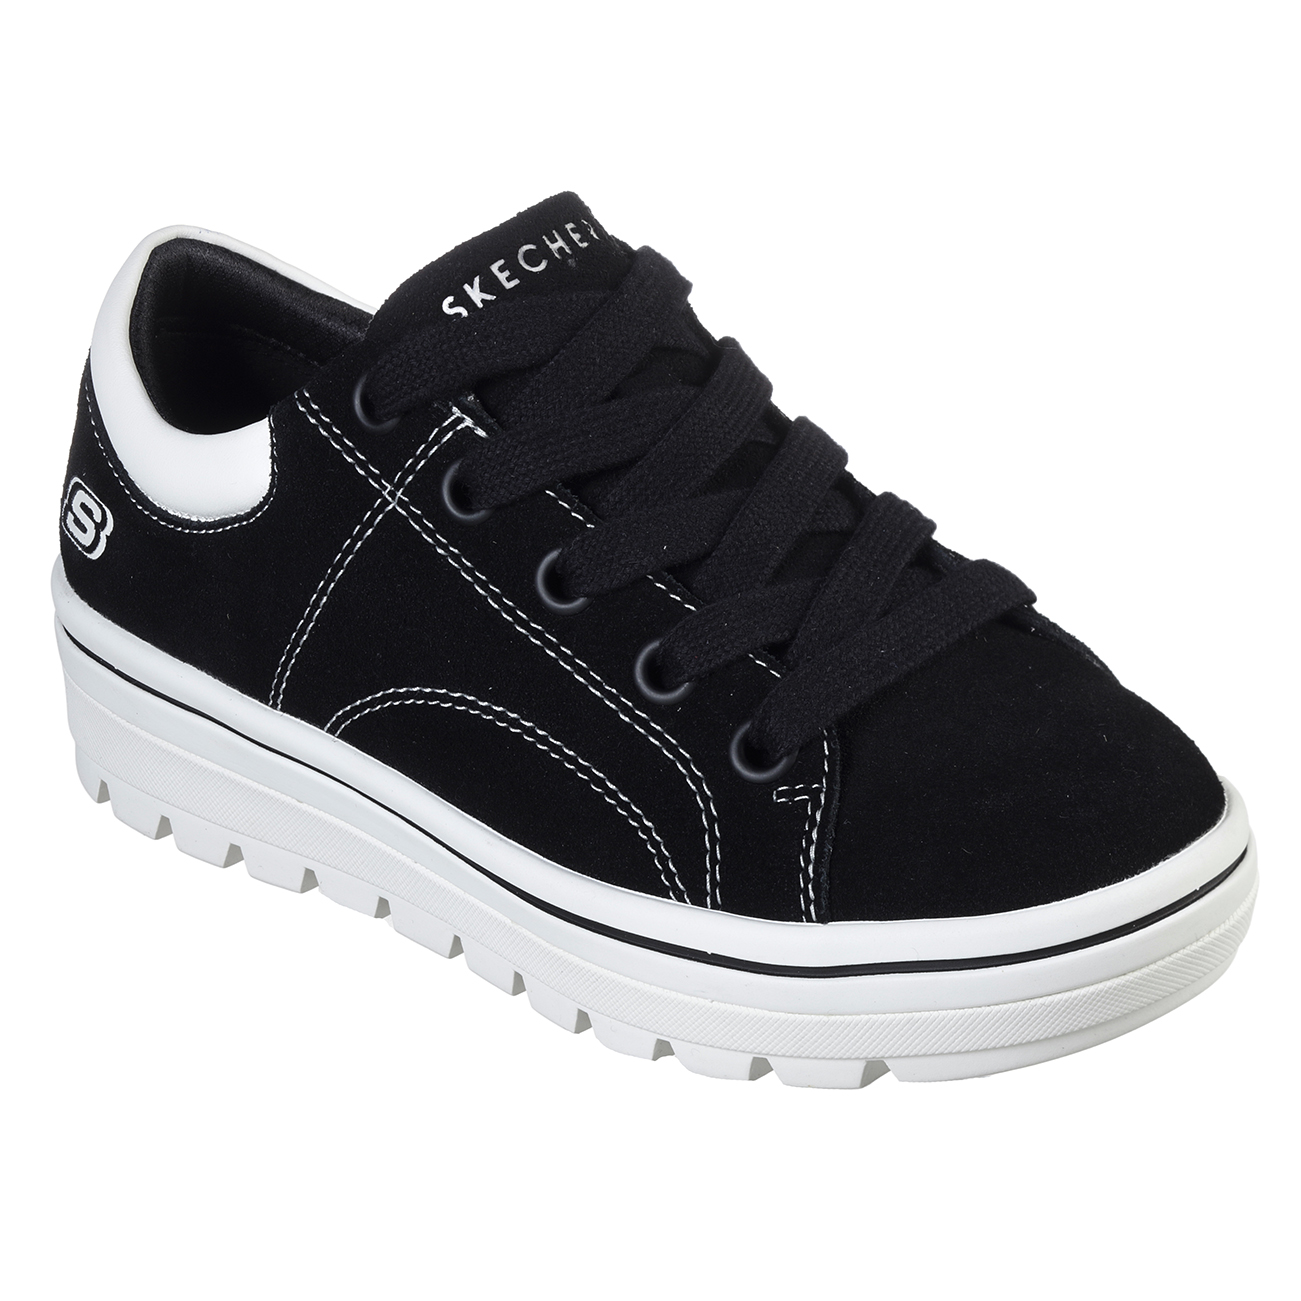 Skechers Street Cleat